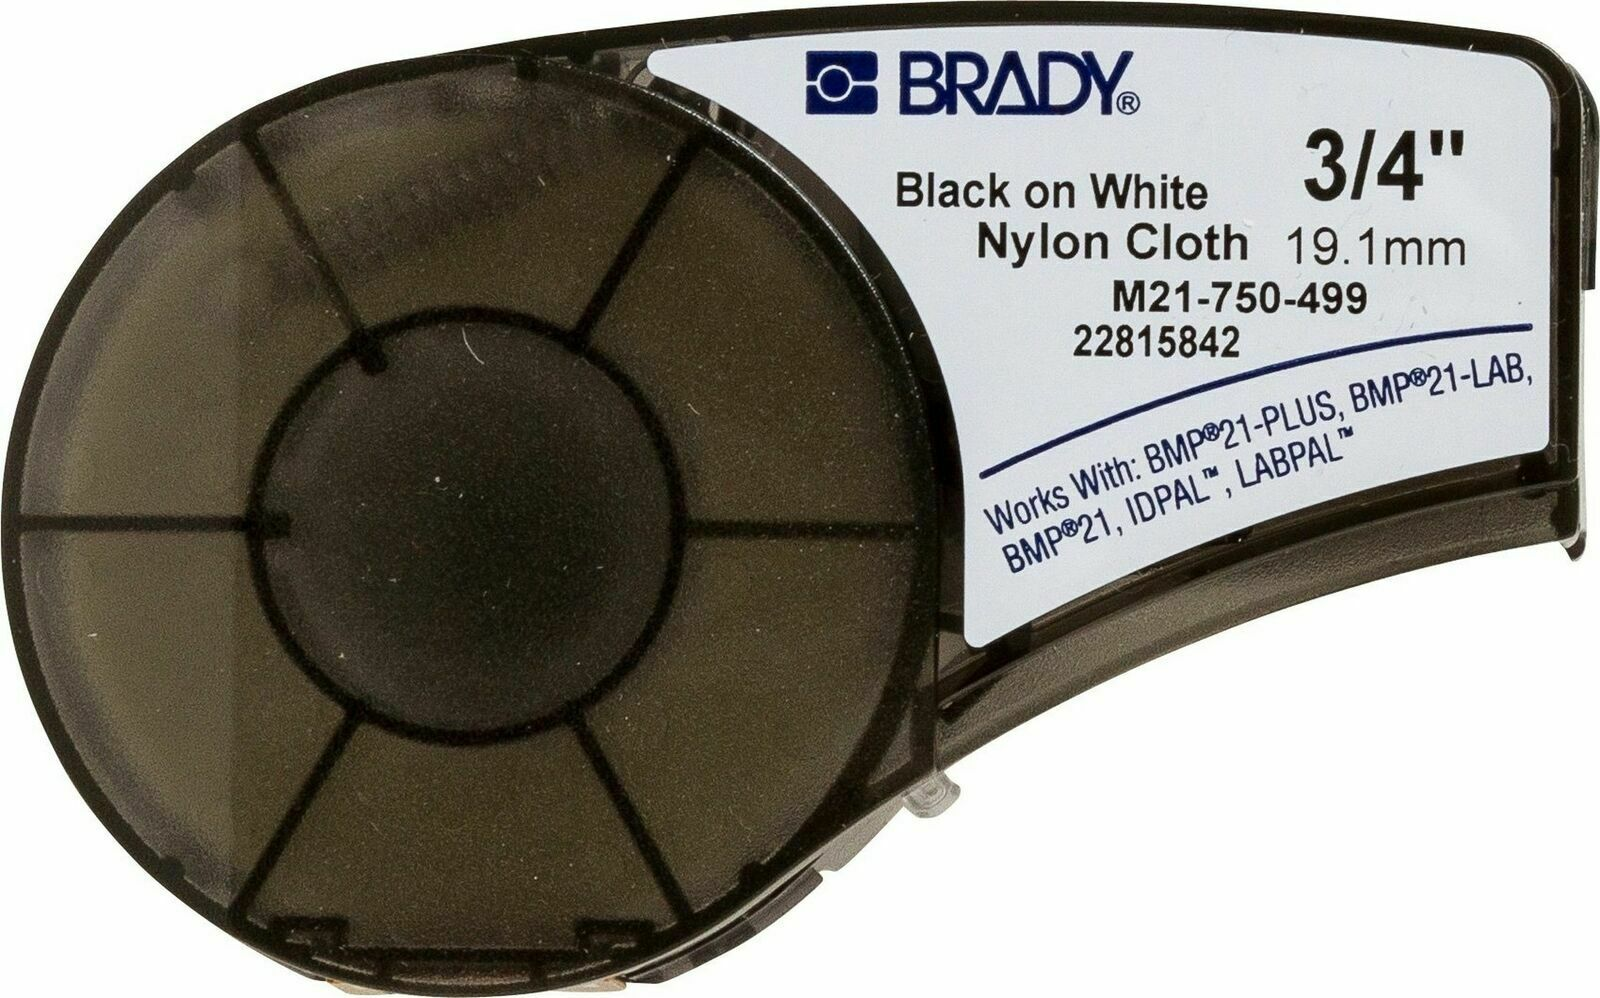 Brady High Adhesion Cloth Label Tape (M21-750-499) - Bl